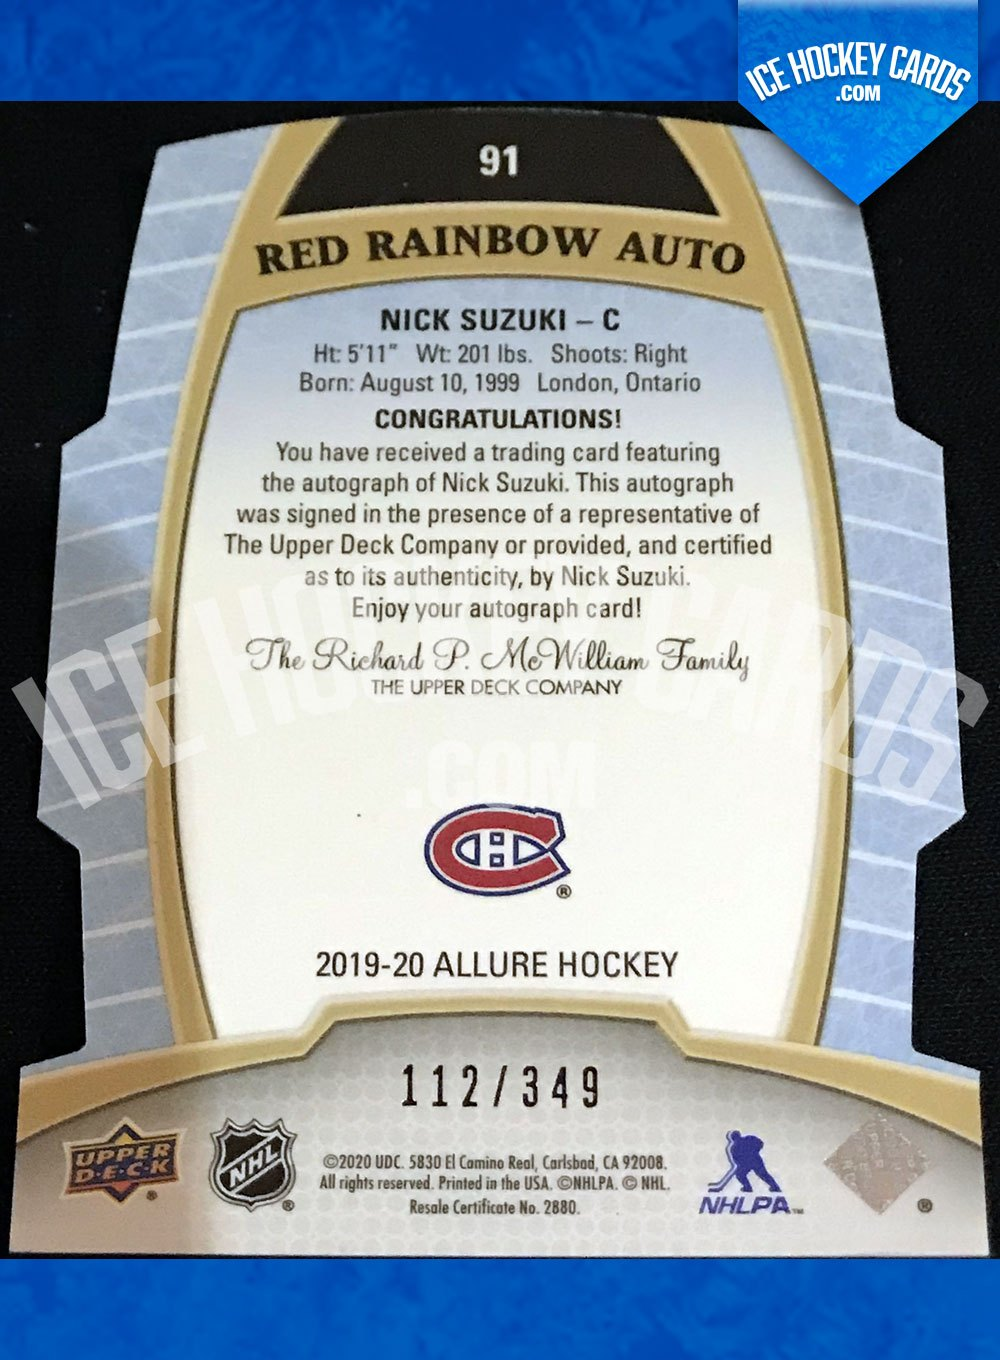 Upper Deck - Allure 19-20 - Nick Suzuki Auto Rookie RC Red Rainbow Auto back